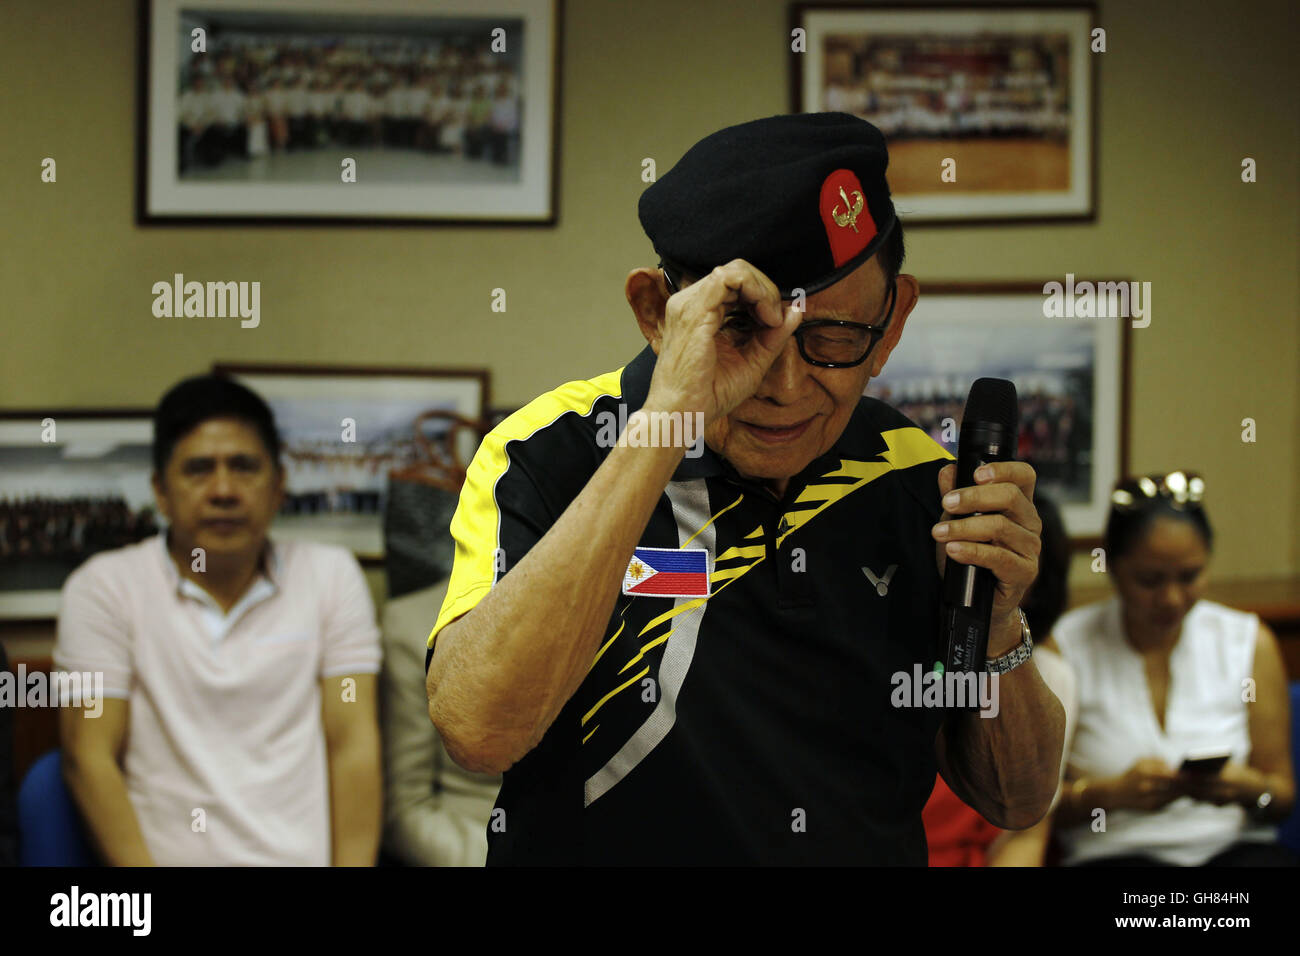 August 9, 2016 - Former president of the Philippines, Fidel